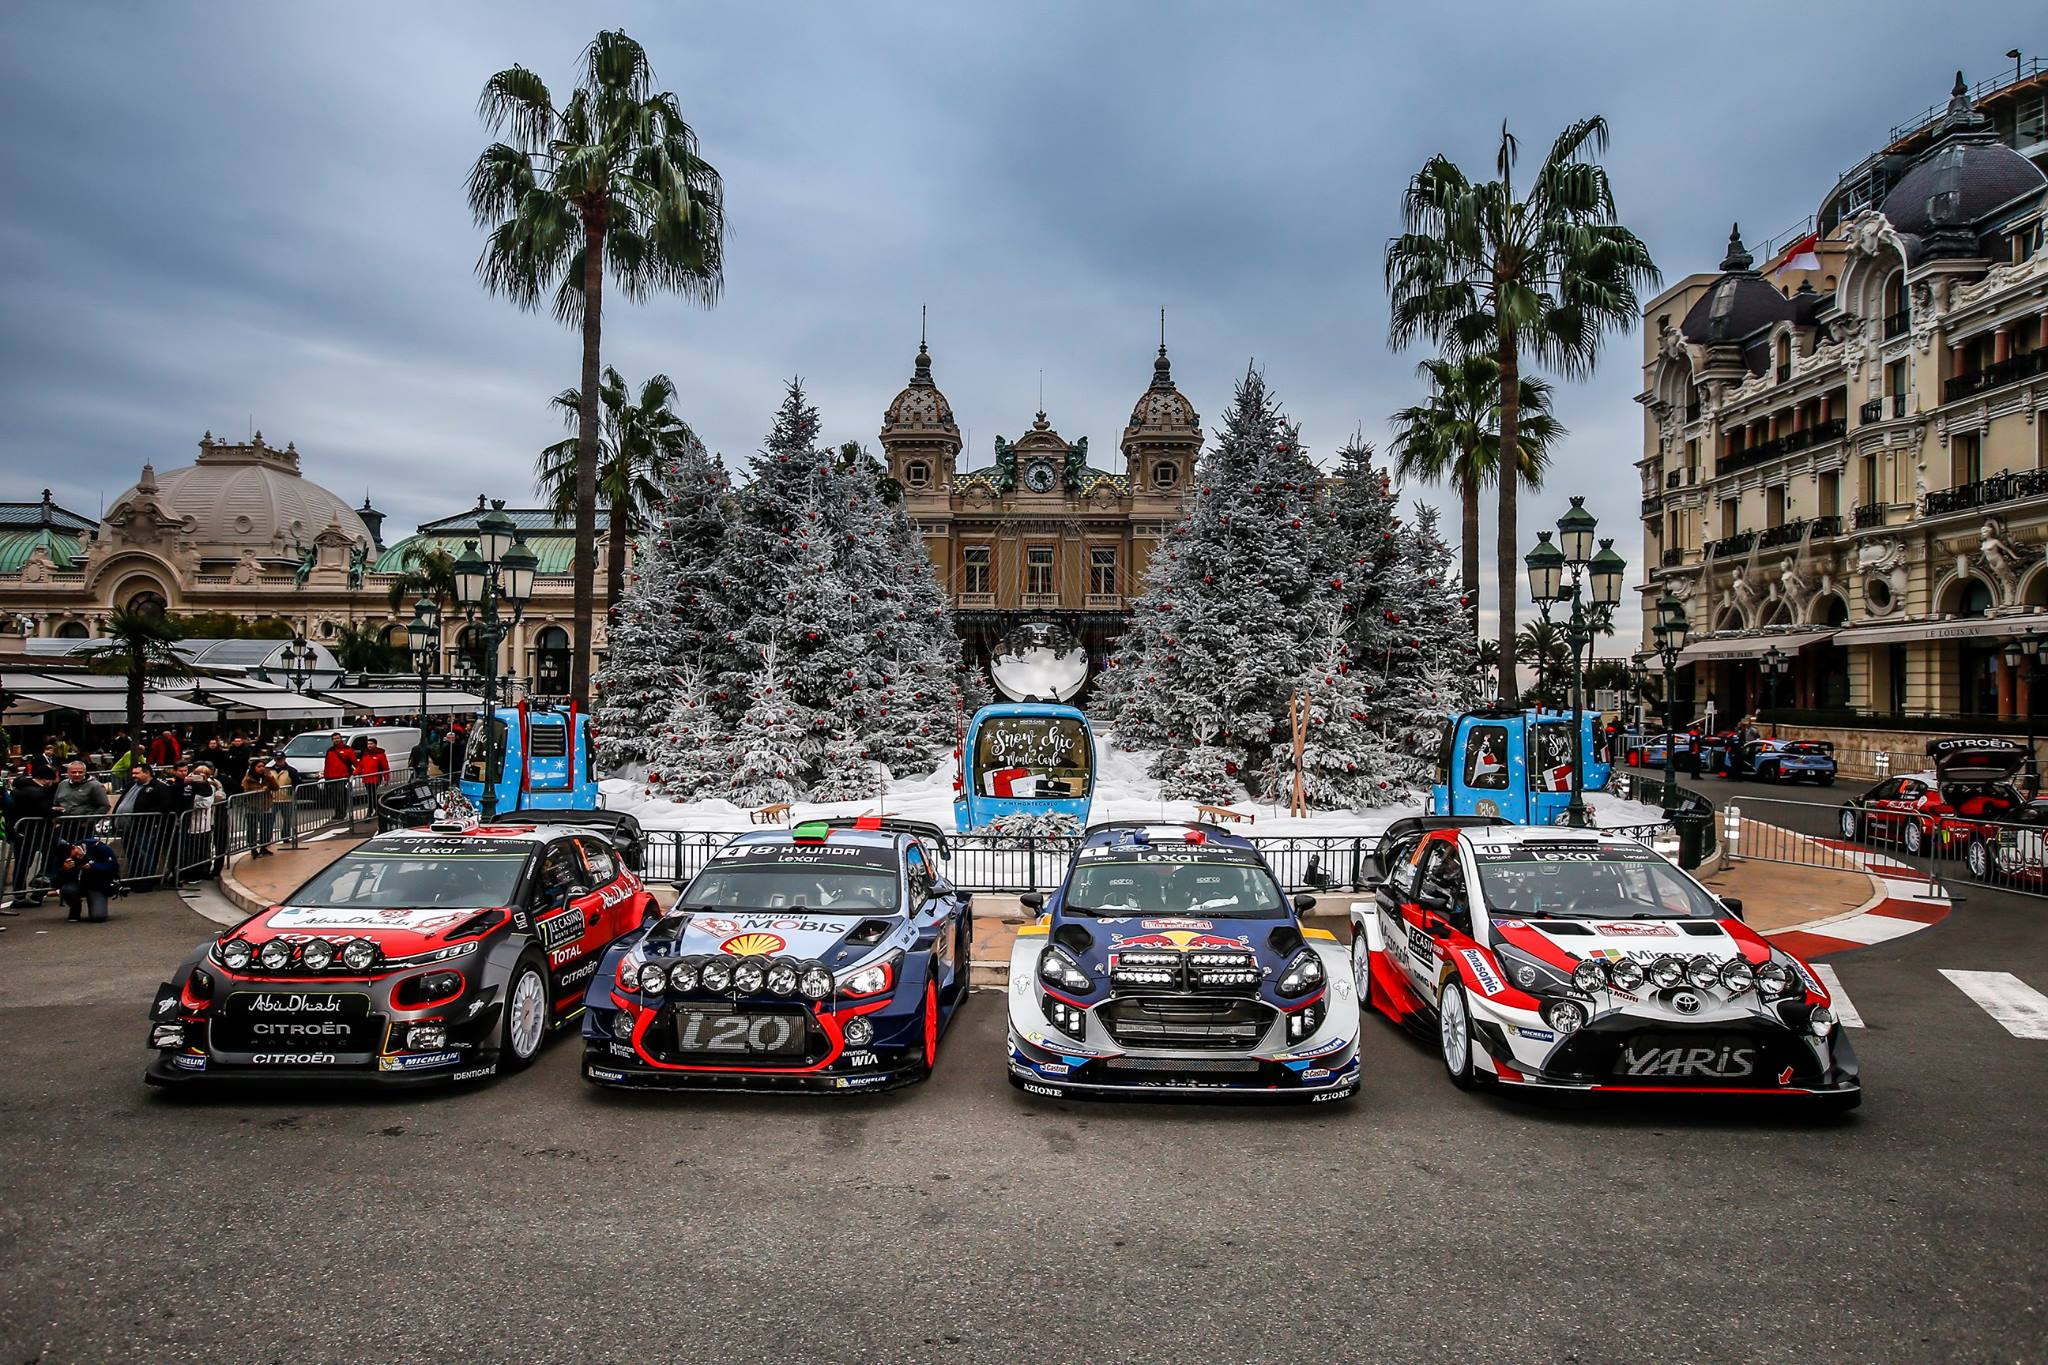 Cars at the 2017 Monte Carlo Rally.